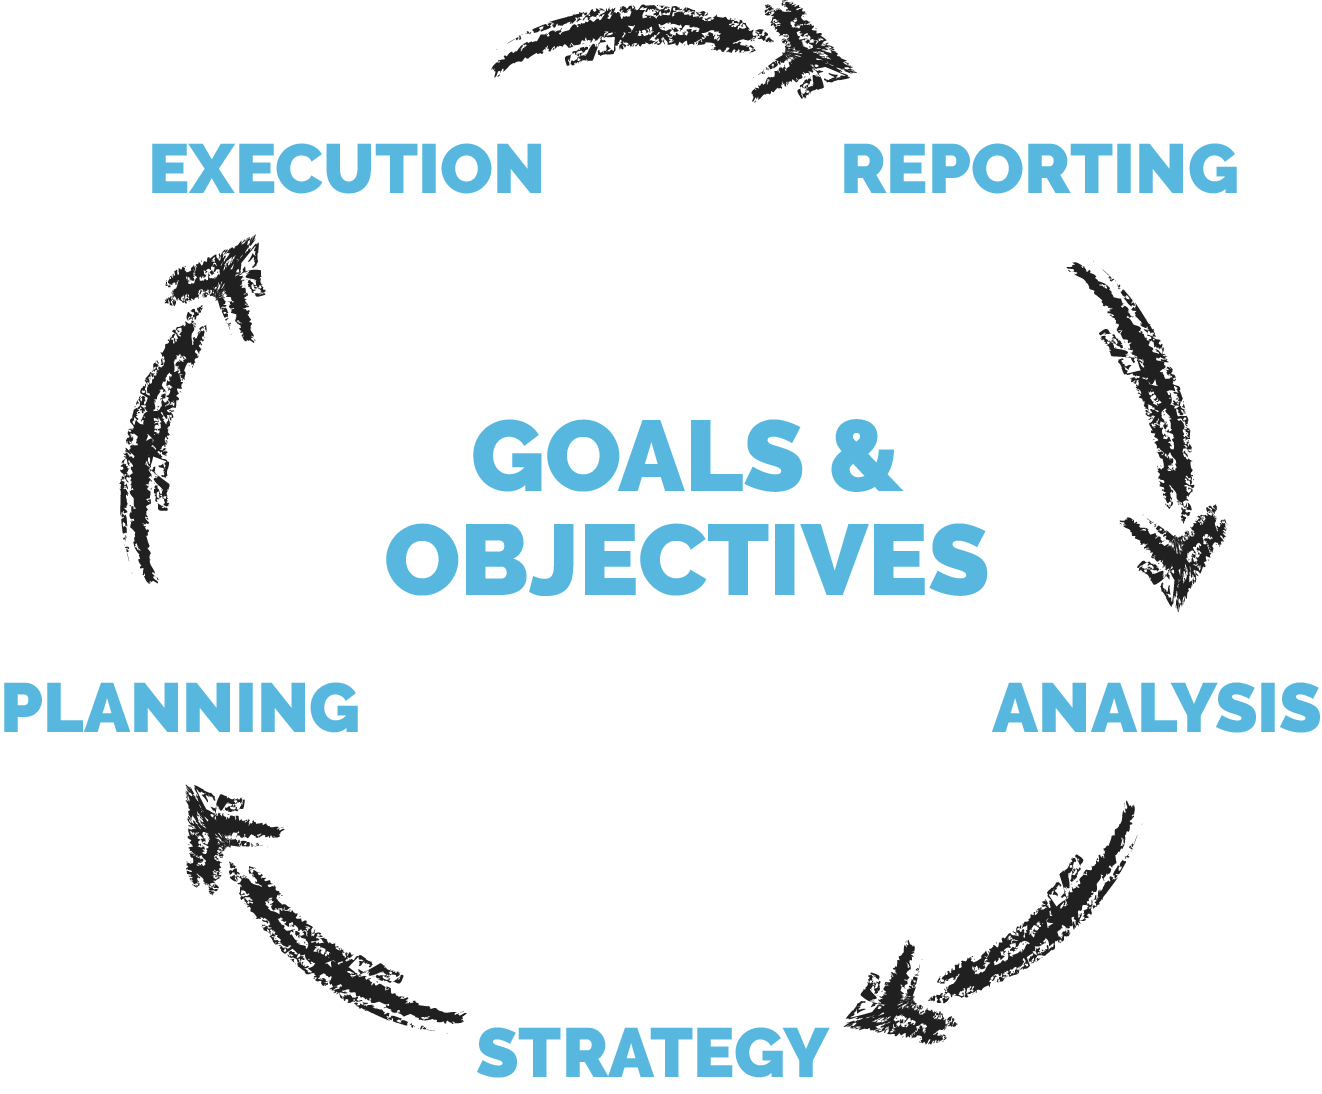 goals and objective flow chart sketch